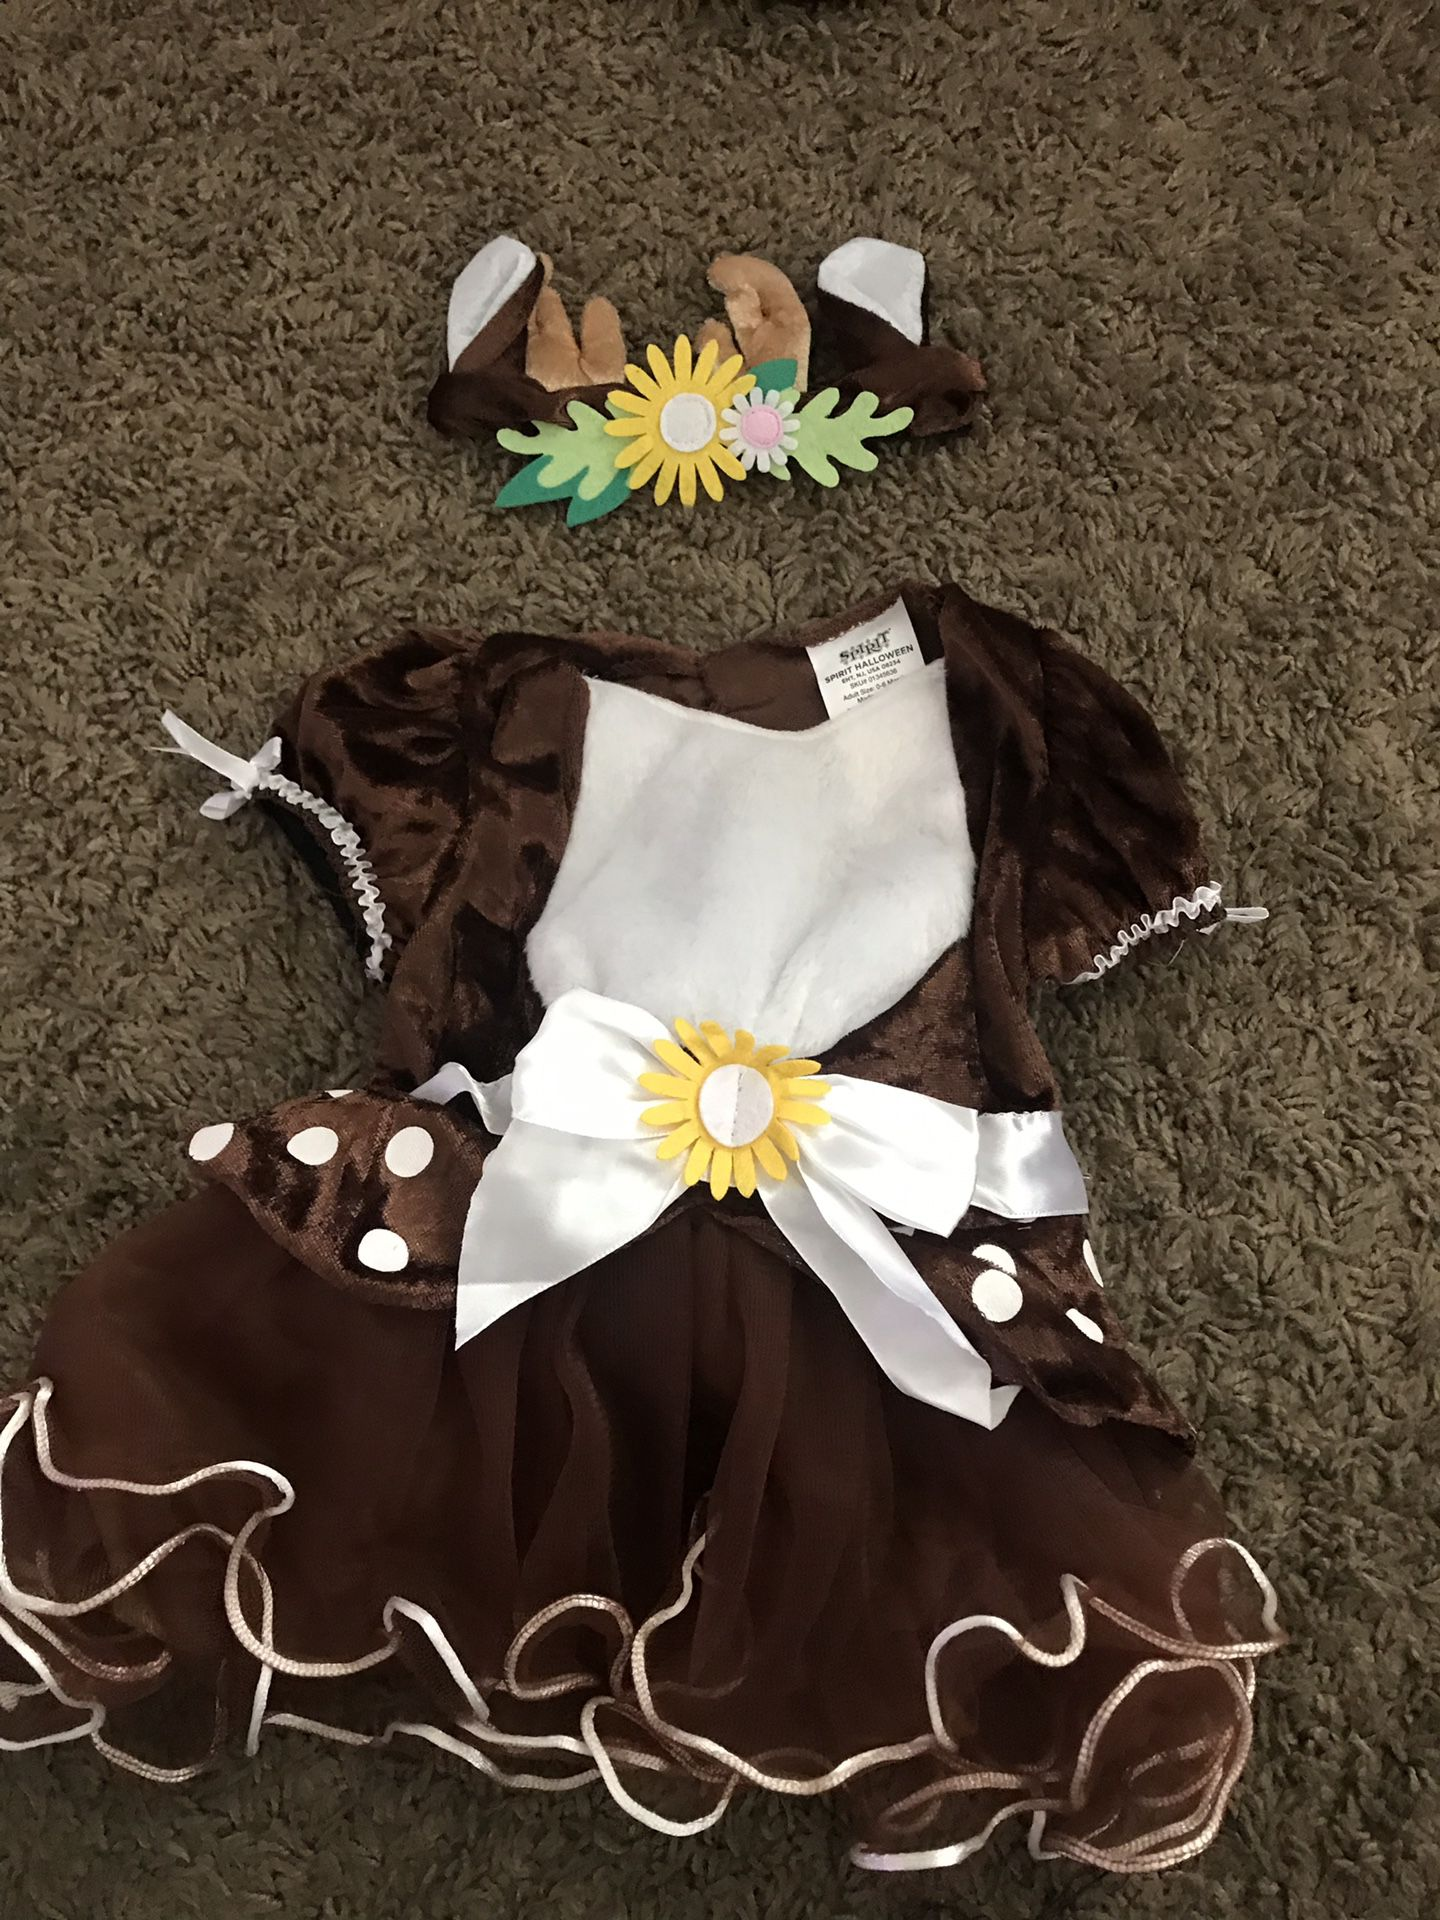 0-6month baby fawn costume/dear candy bucket